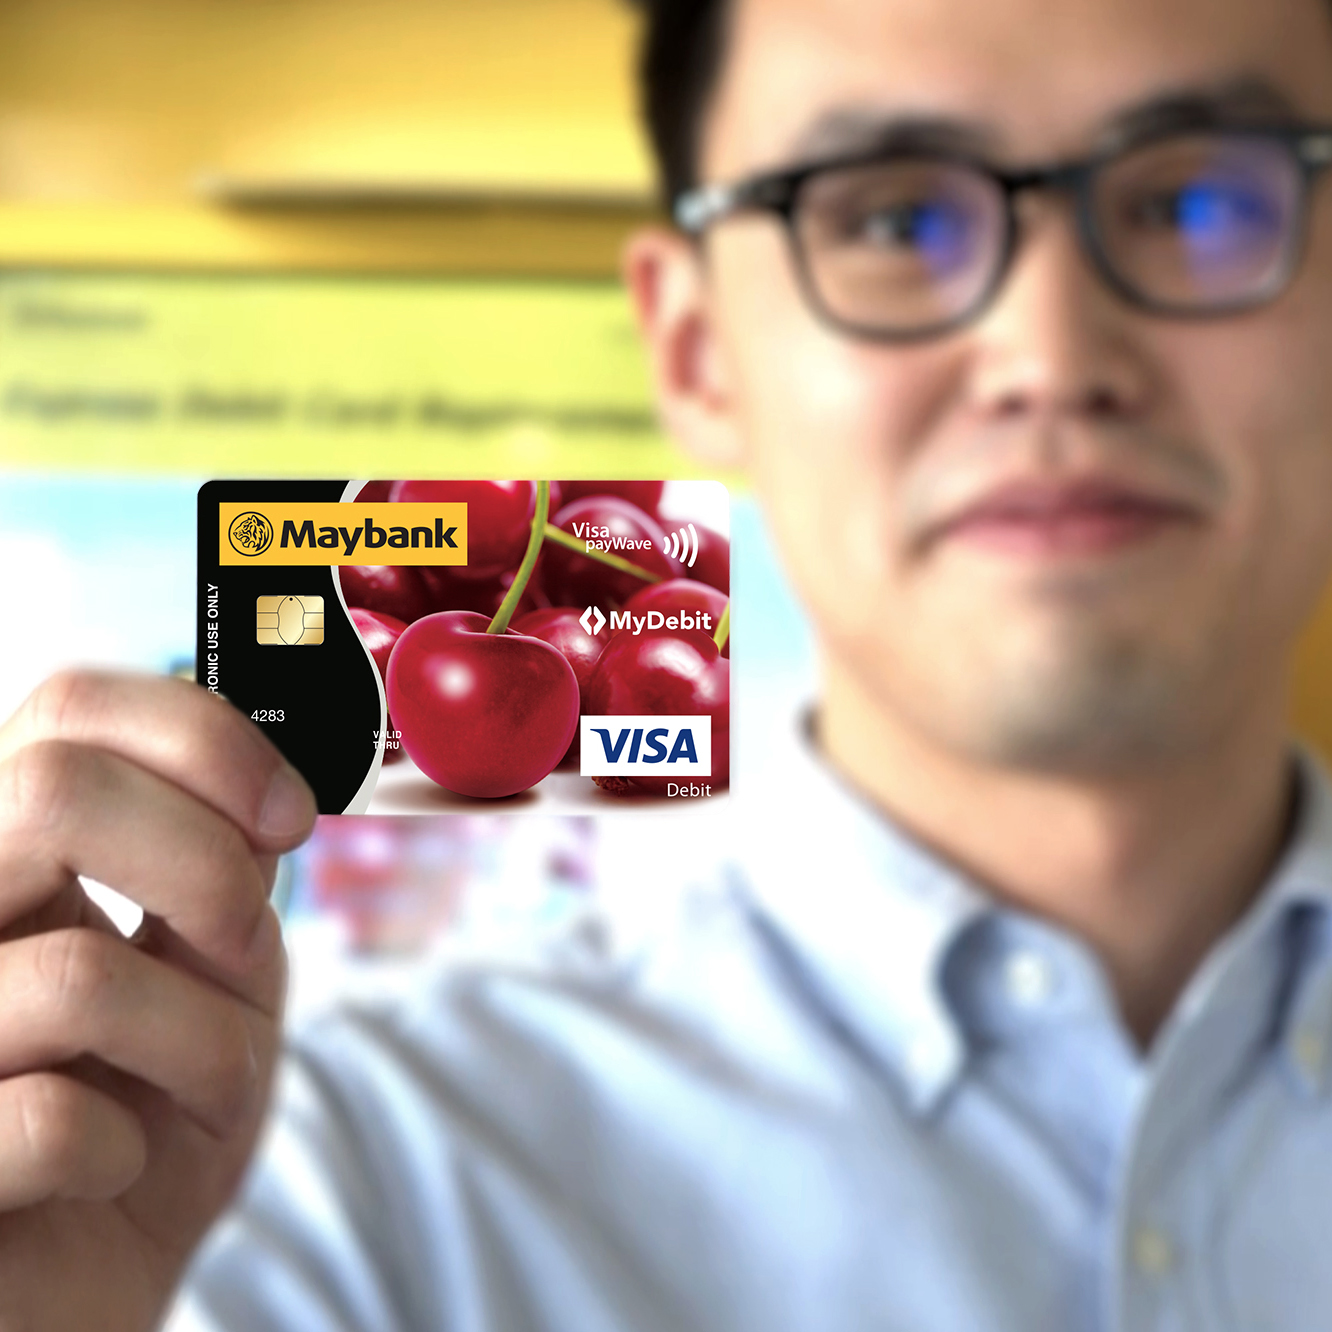 Maybank re-carding video screen with user showing the exchanged debit card